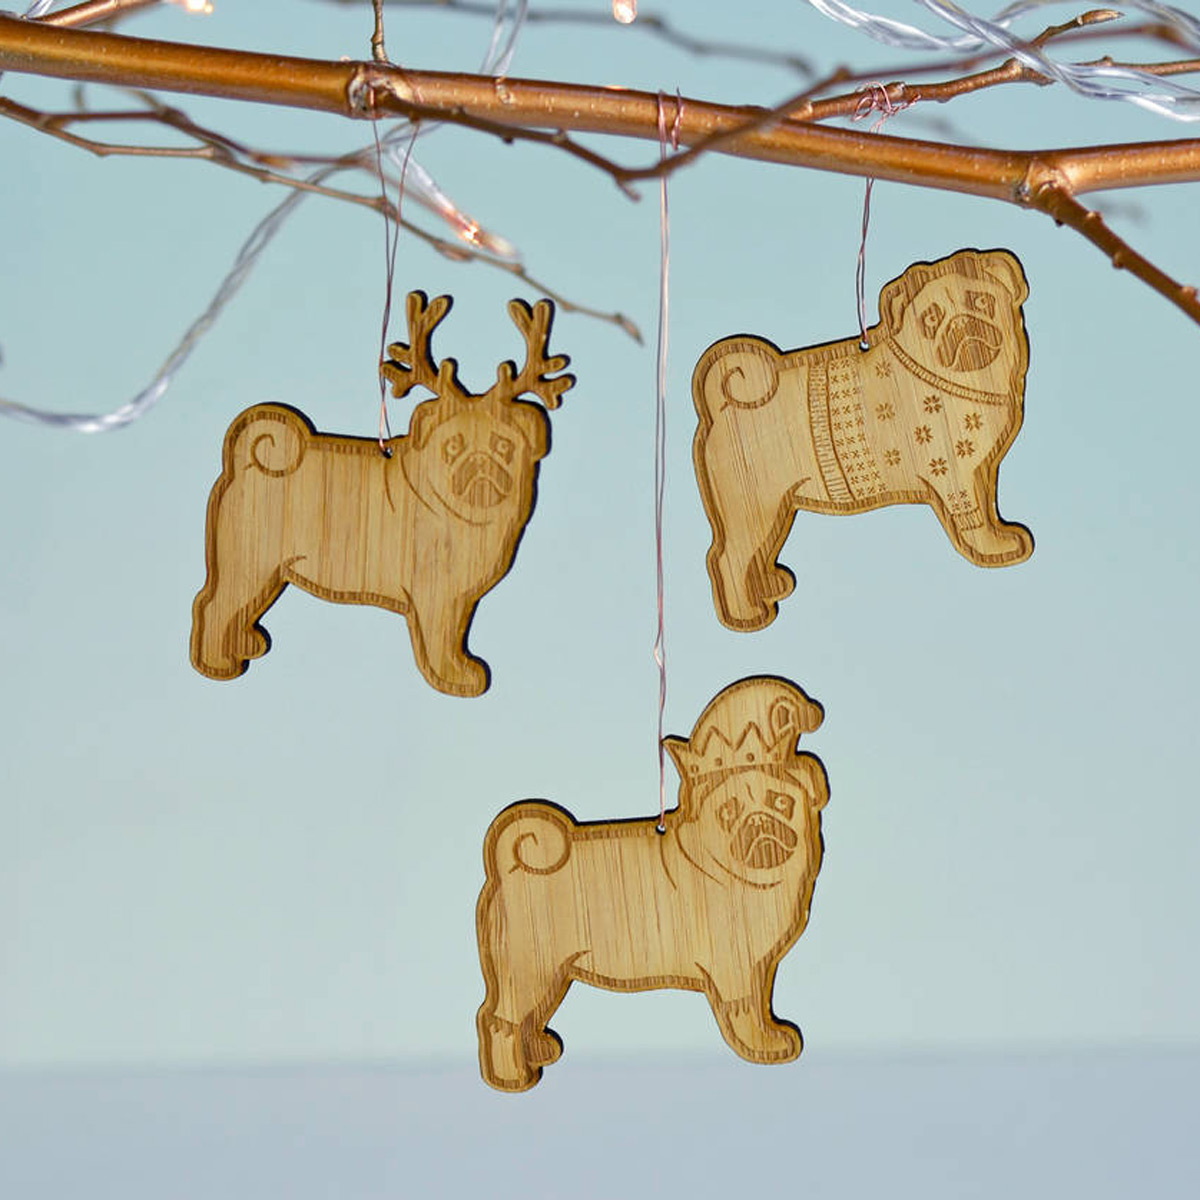 Pug Christmas decorations, £5.45, Not on the High Street